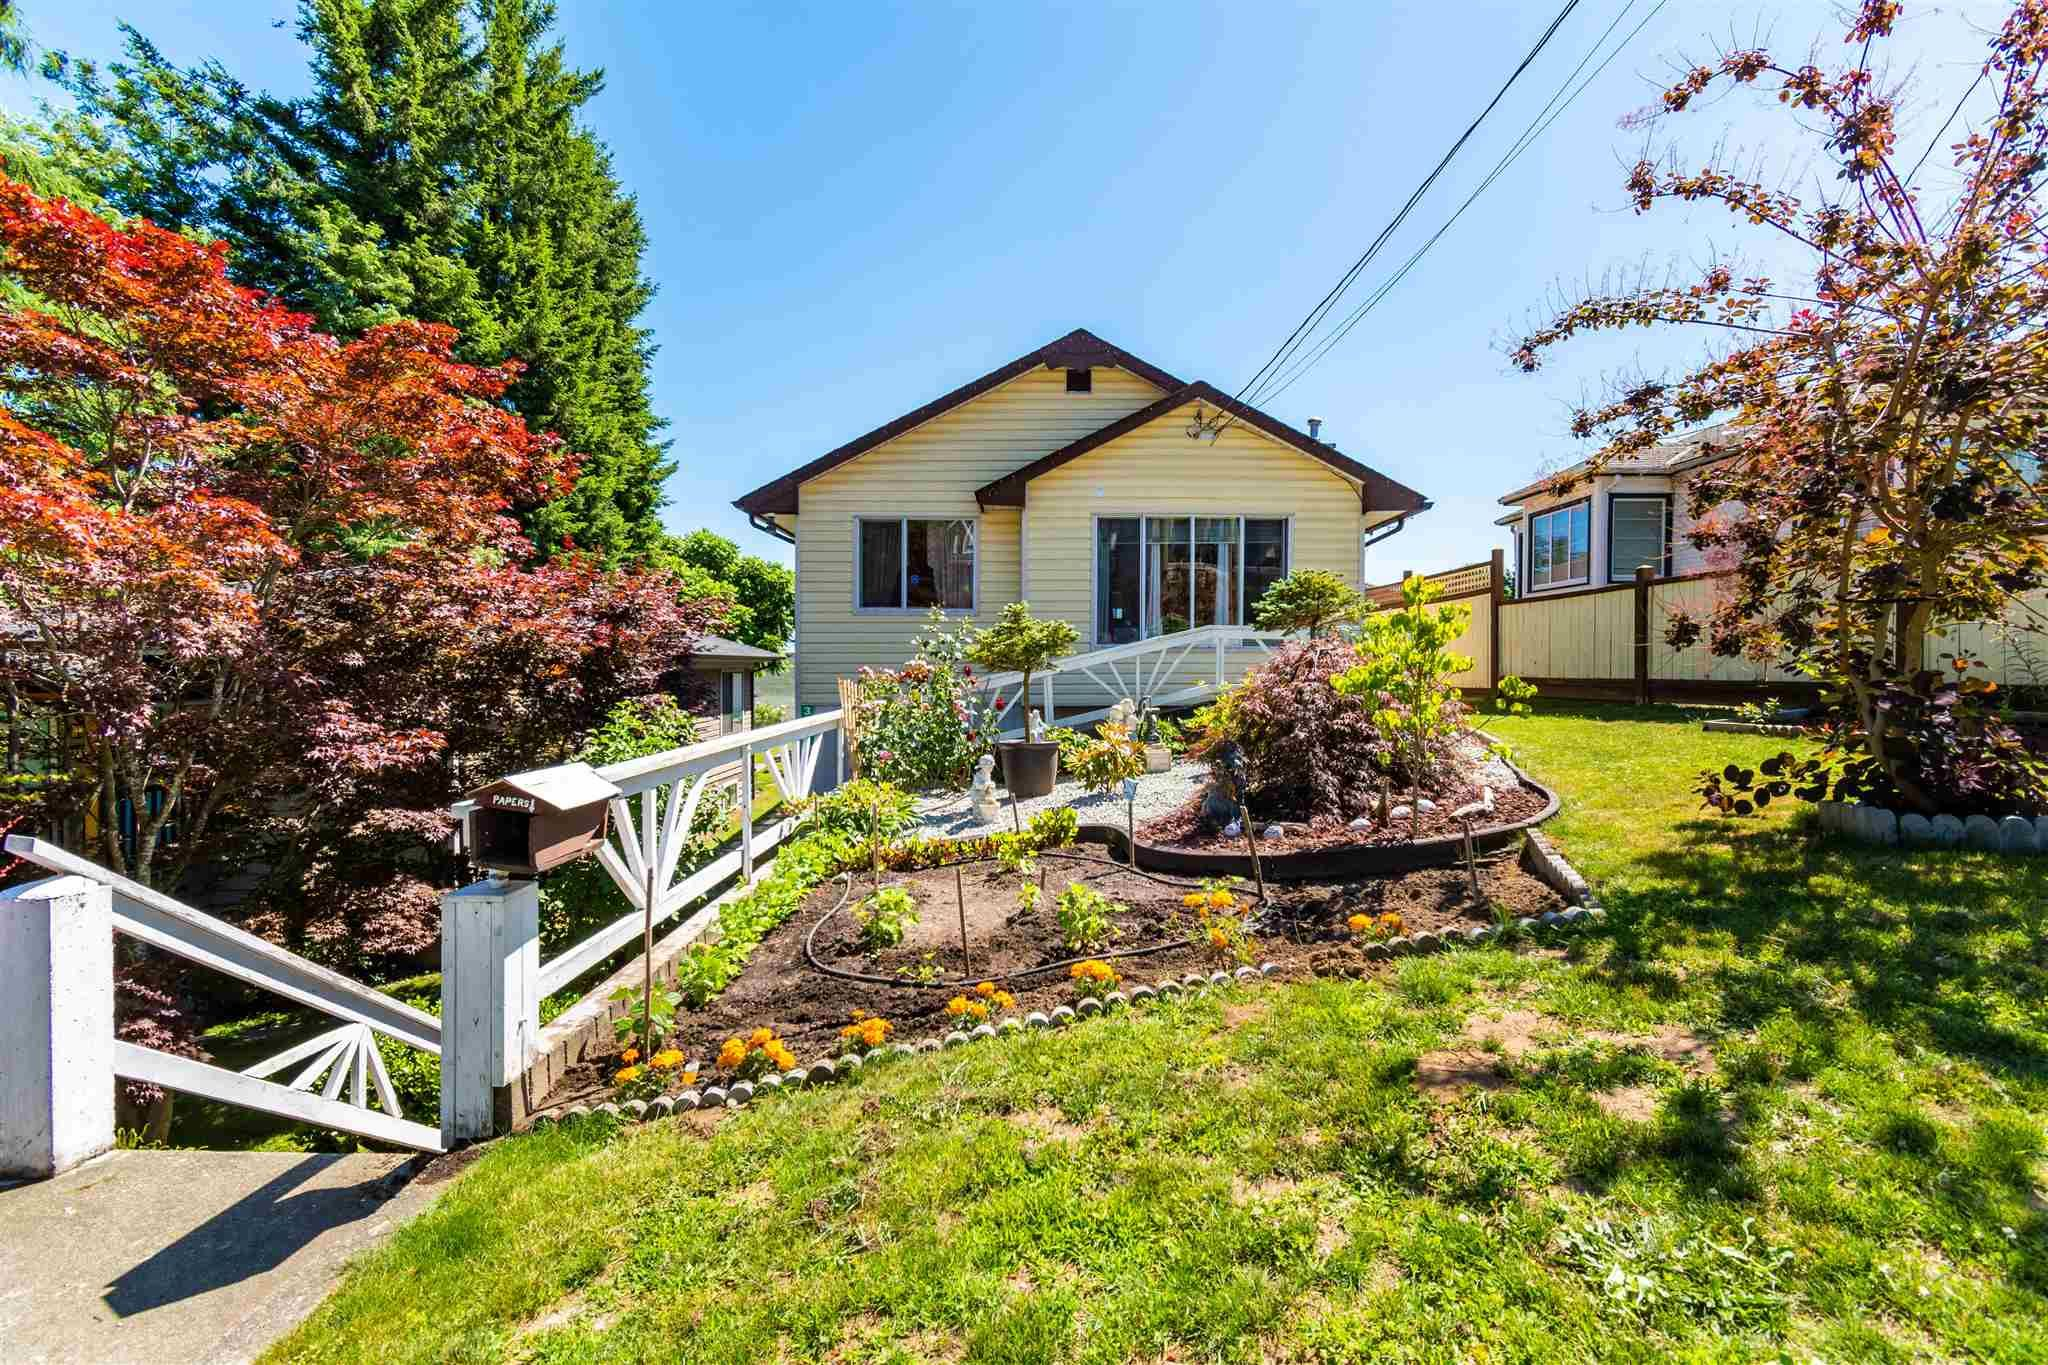 """Main Photo: 32870 3RD Avenue in Mission: Mission BC House for sale in """"WEST COAST EXPRESS EASY ACCESS"""" : MLS®# R2595681"""